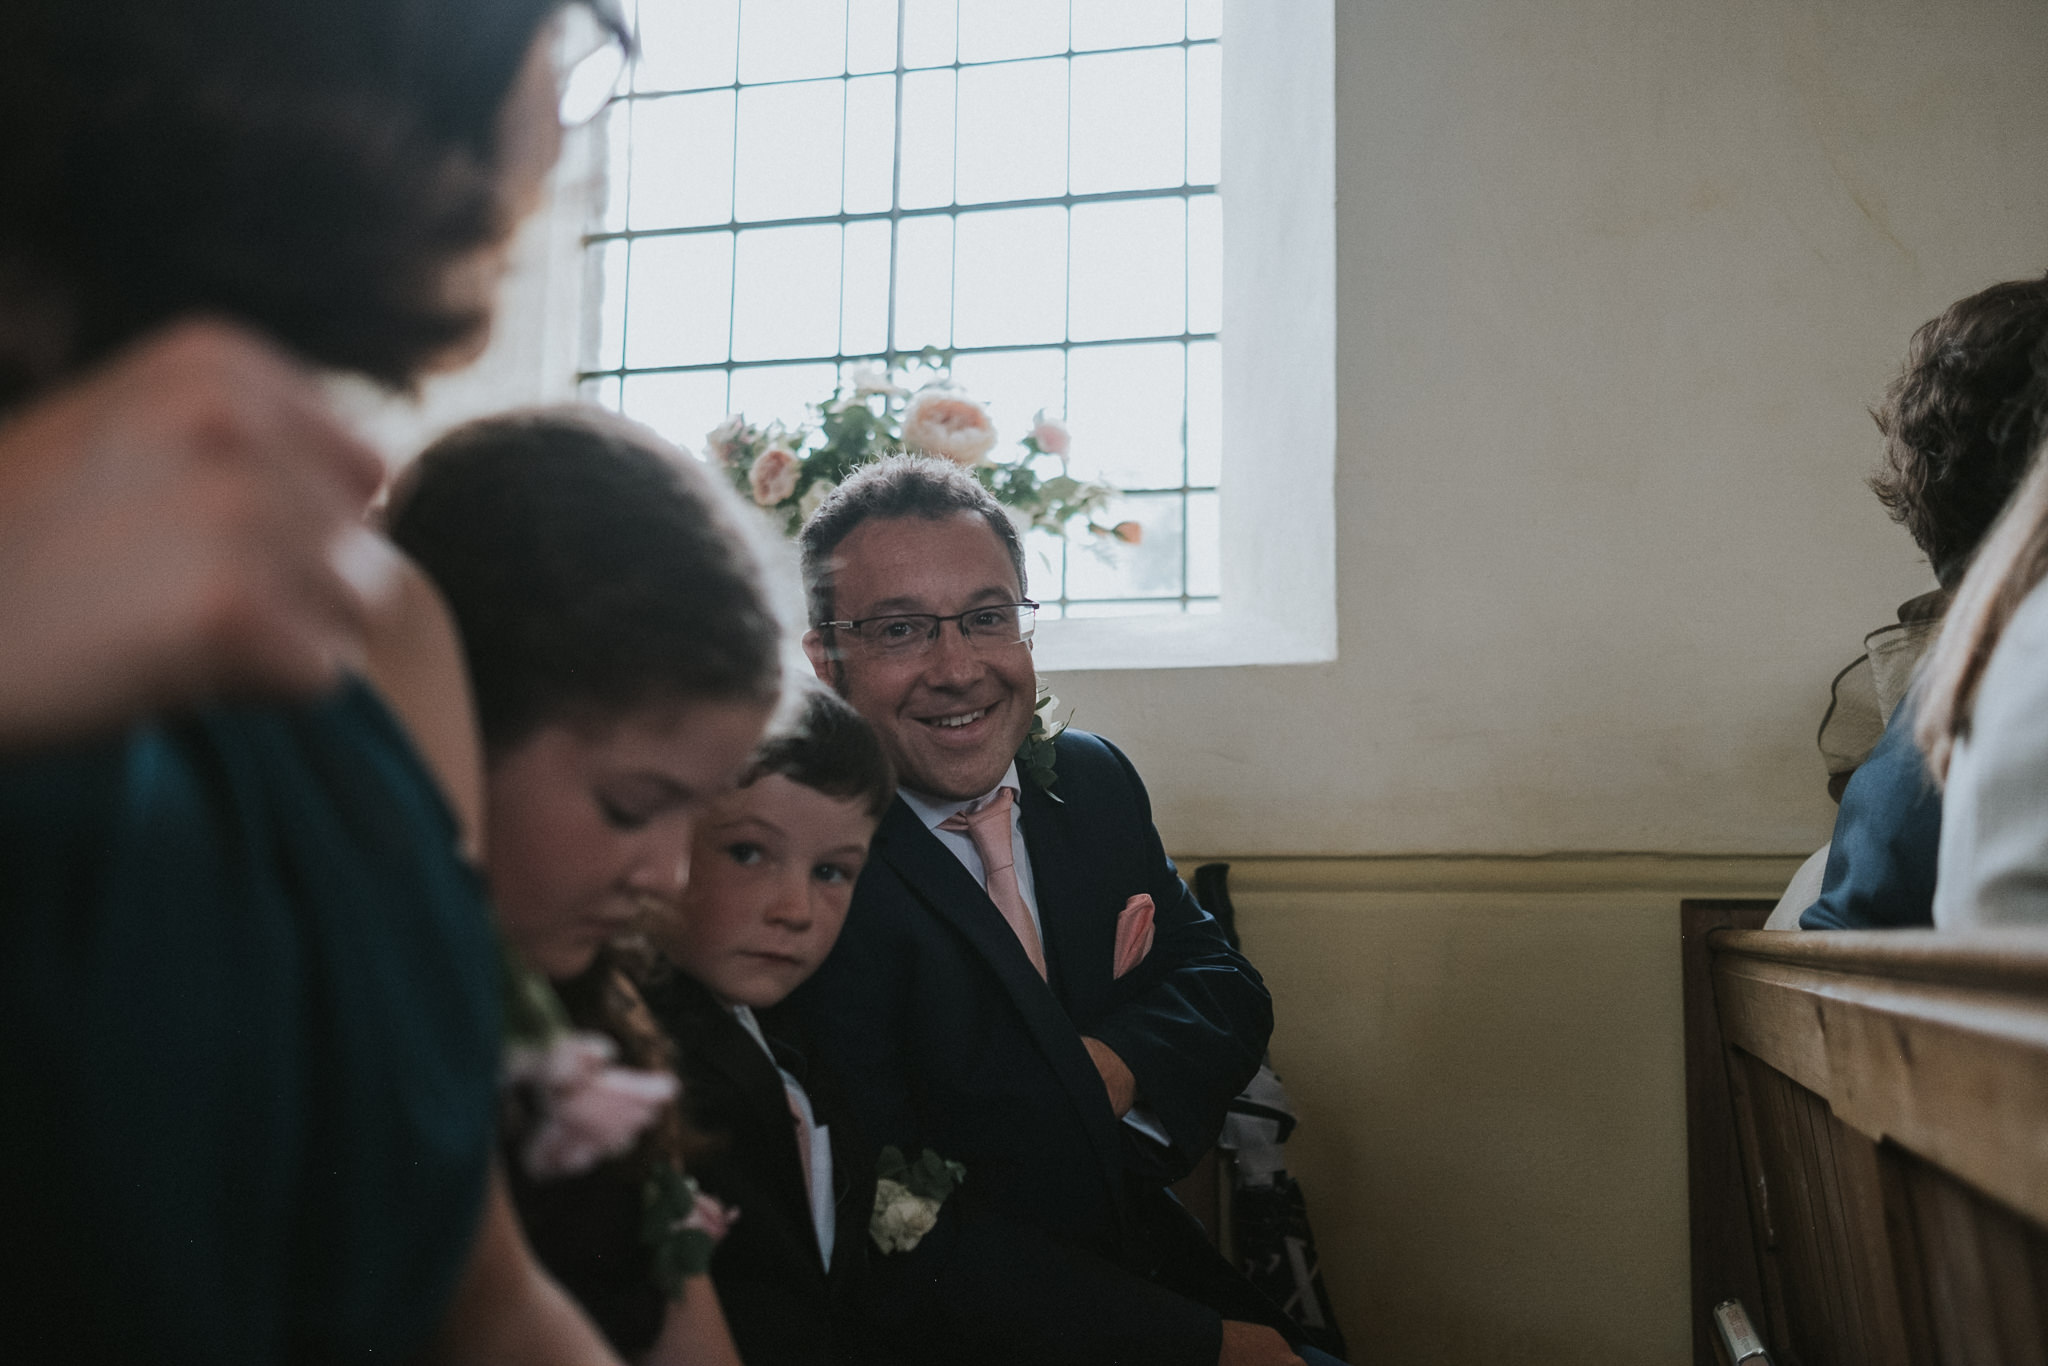 berkshire_wedding_photographer_emma_simon (145 of 327).jpg